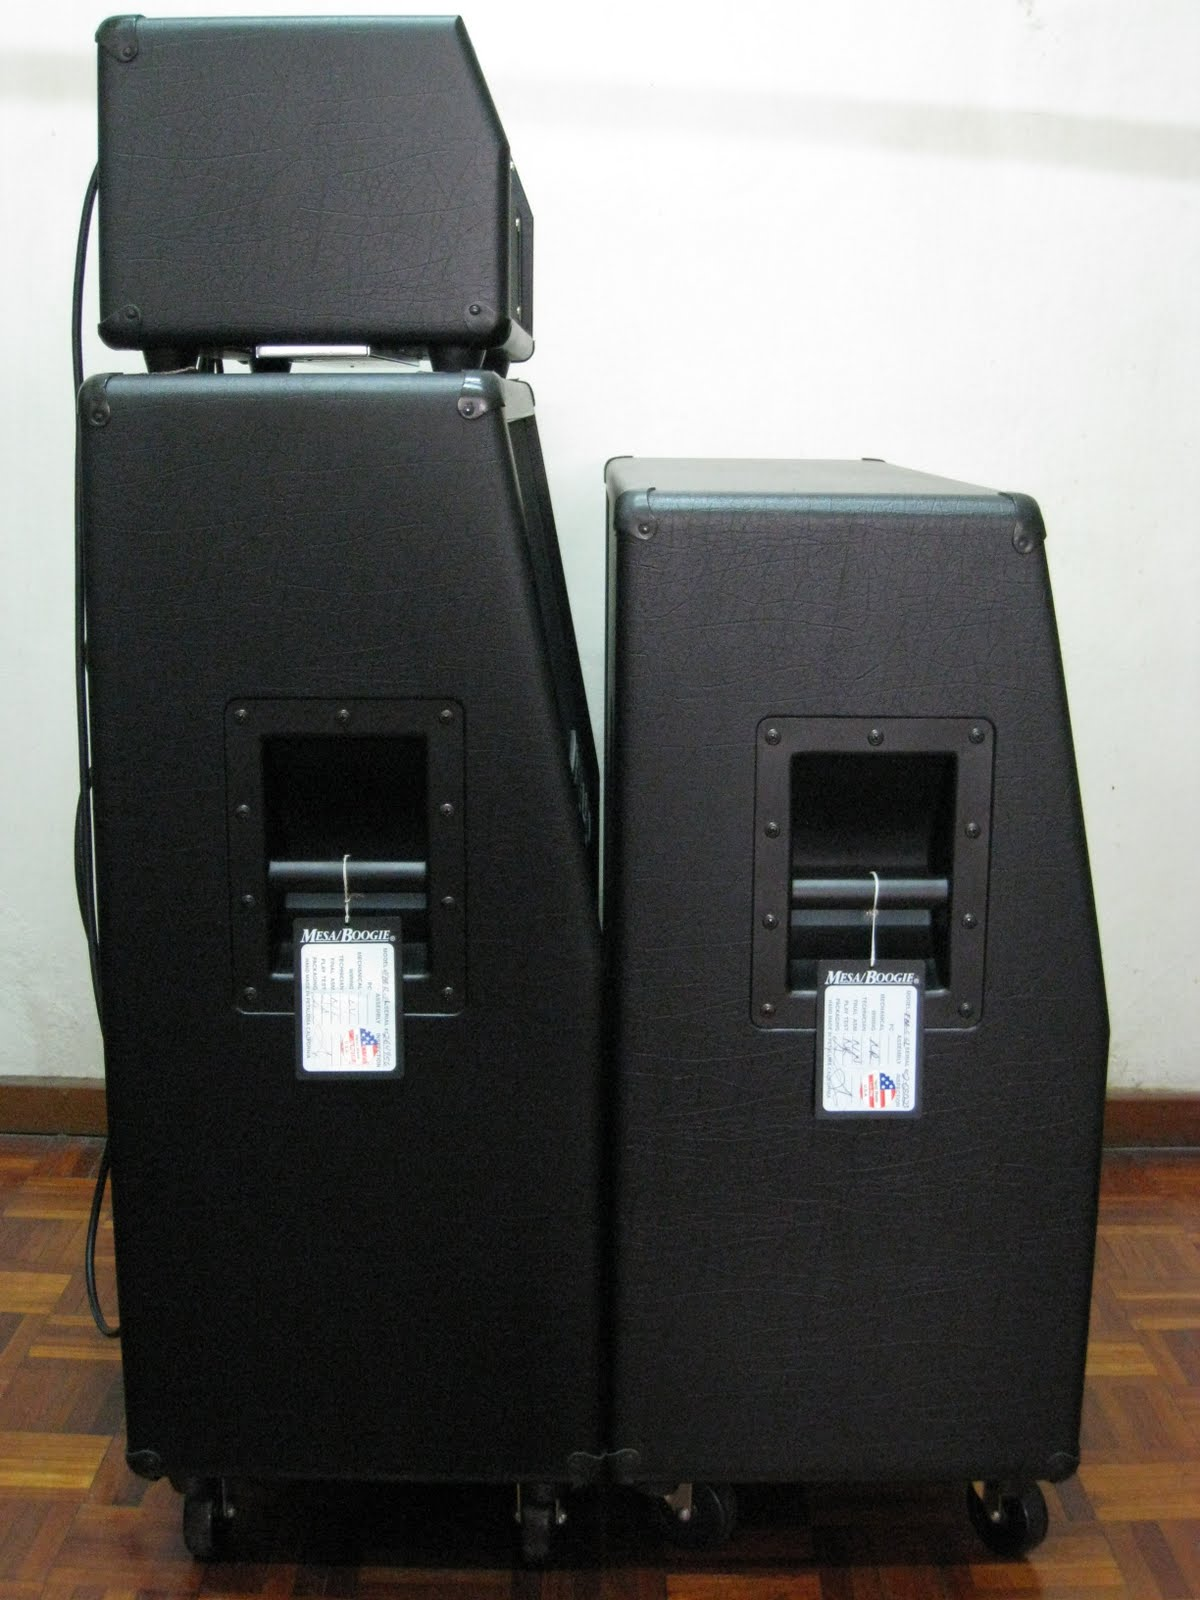 Stiletto Traditional Cabinet Is Much Smaller Than Rectifier Cabinet. For  The Performance Wise, These Two Cabinets Have Very Obvious Difference